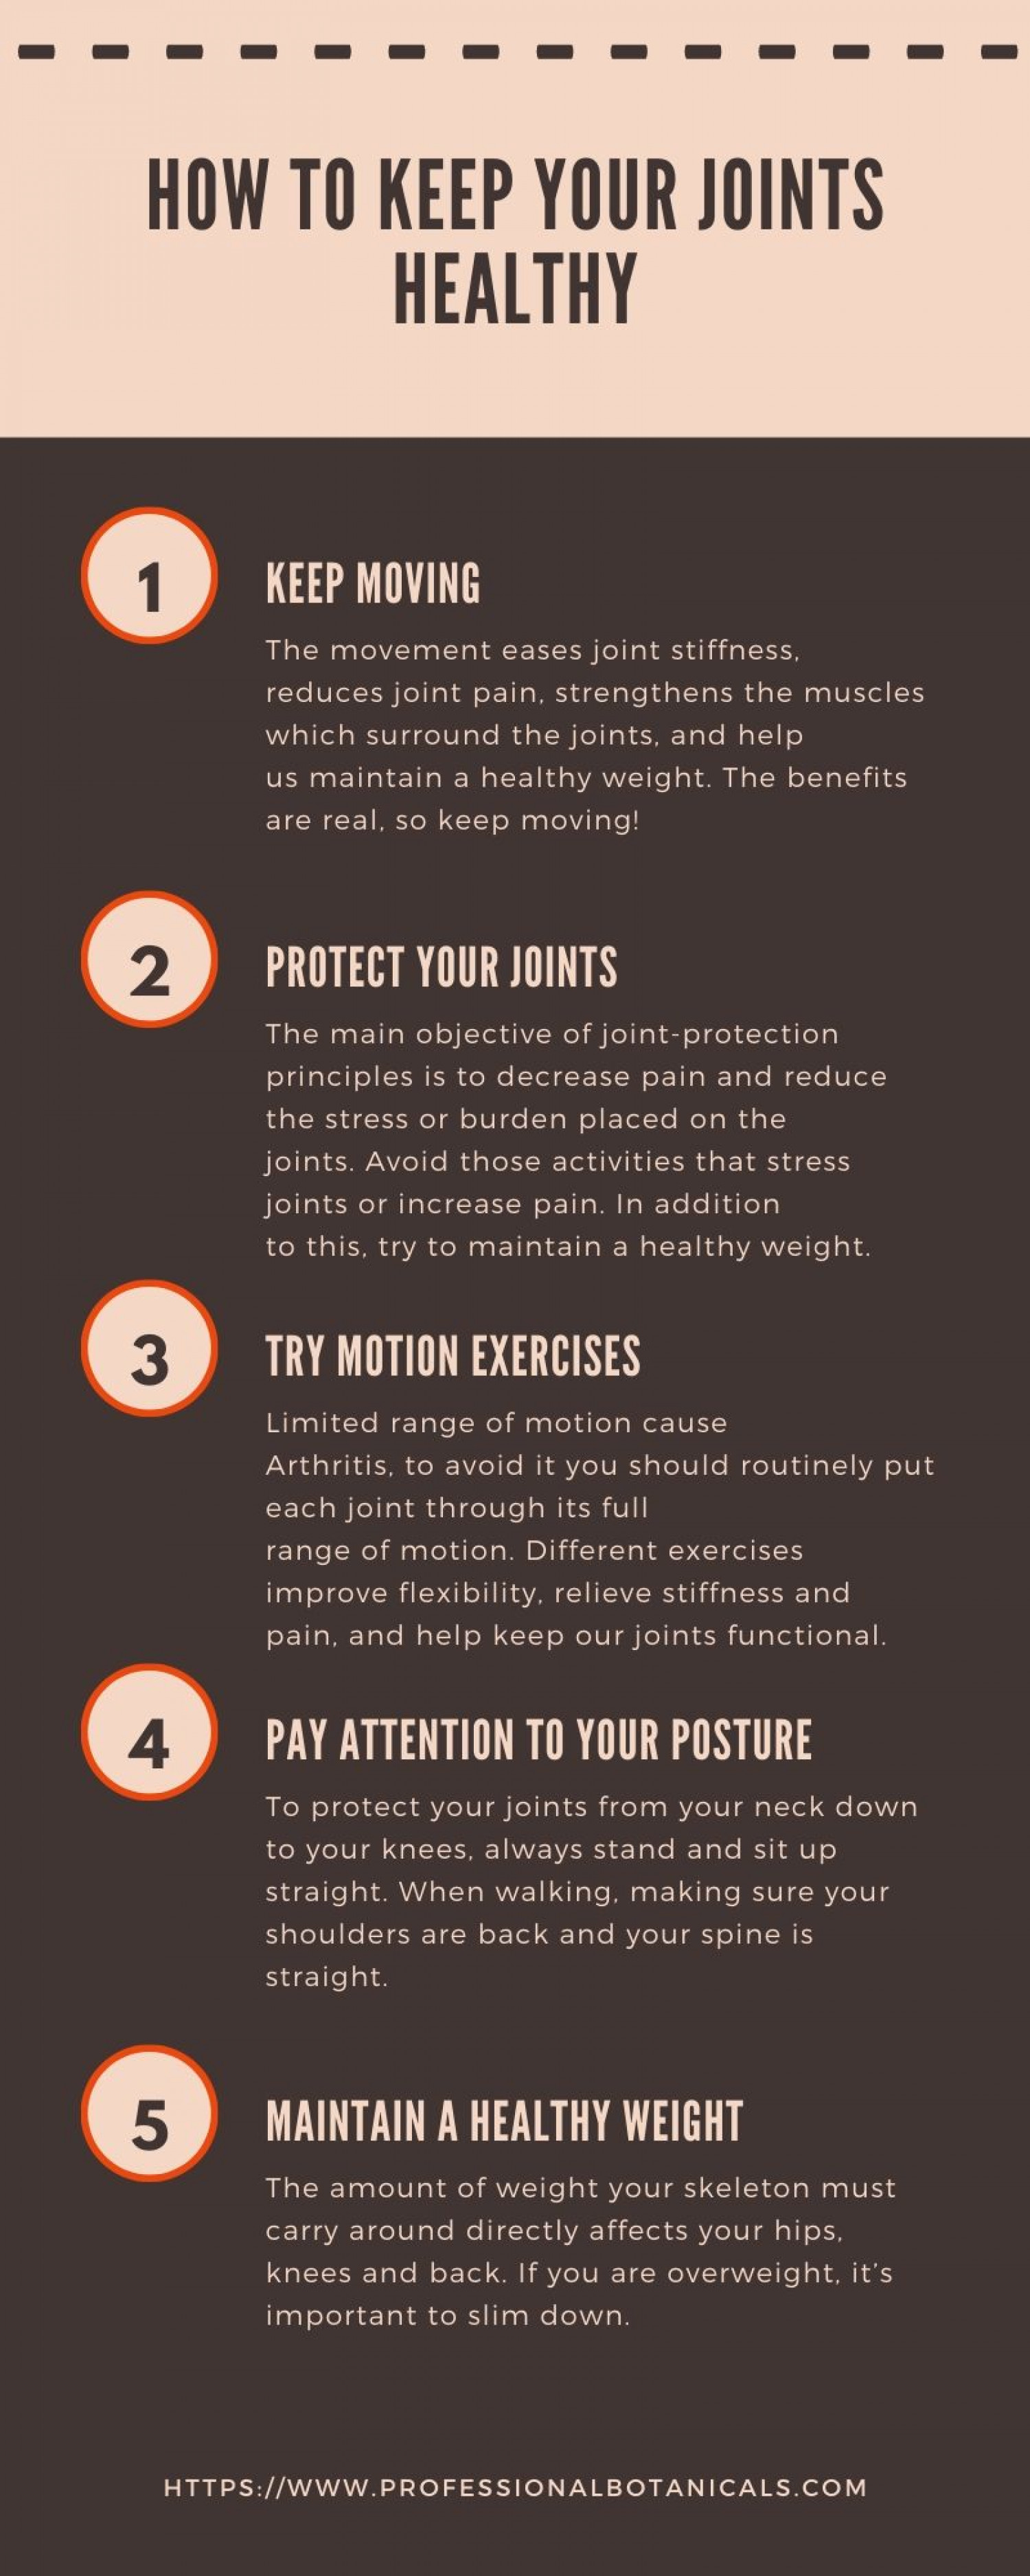 How to Keep Your Joints Healthy Infographic